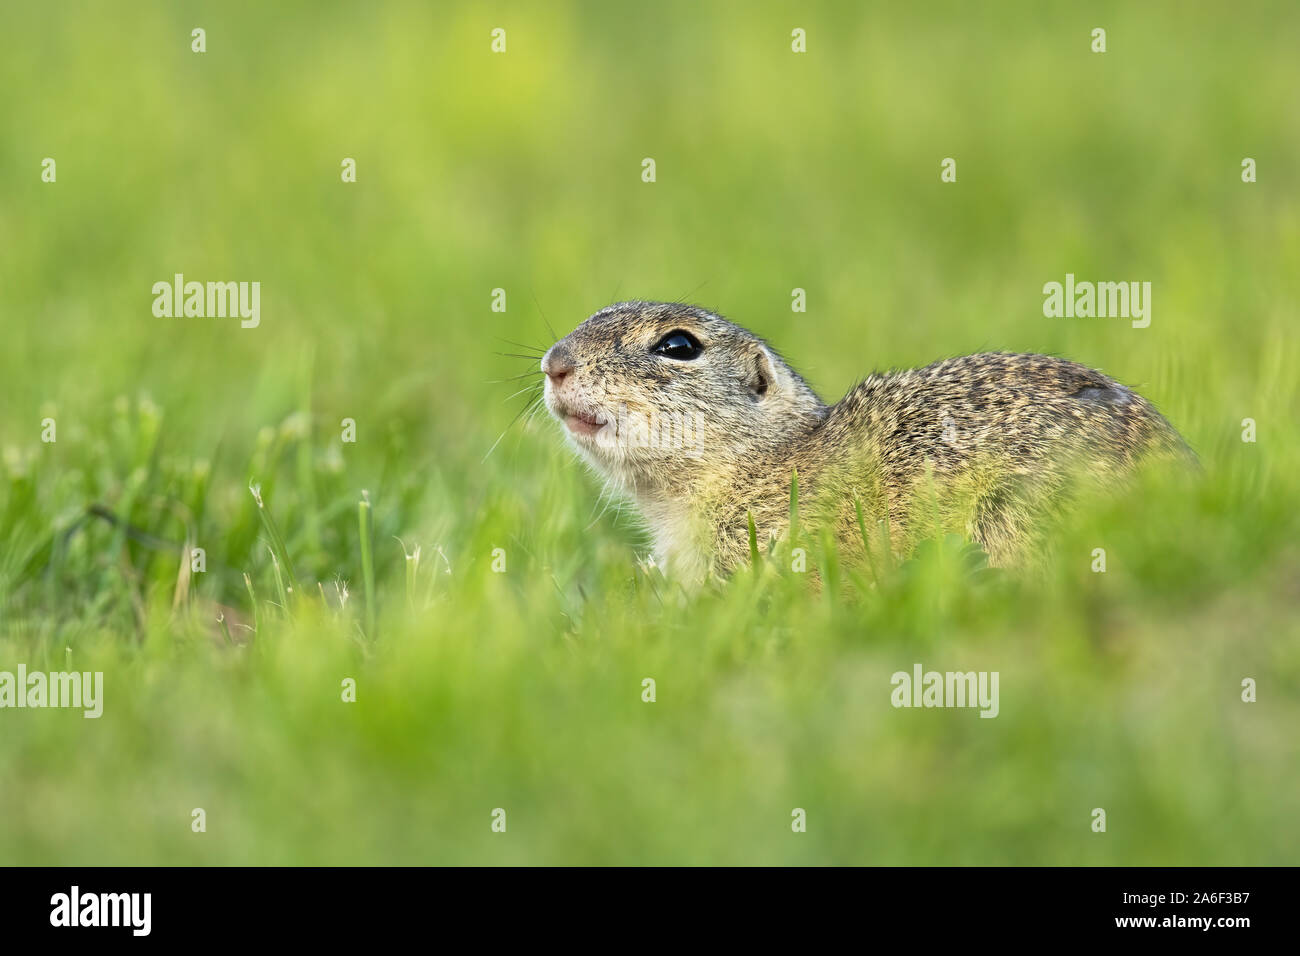 Endangered european ground squirrel, spermophilus citellus, lying on green field hiding. Wild animal in nature early in the morning. Stock Photo